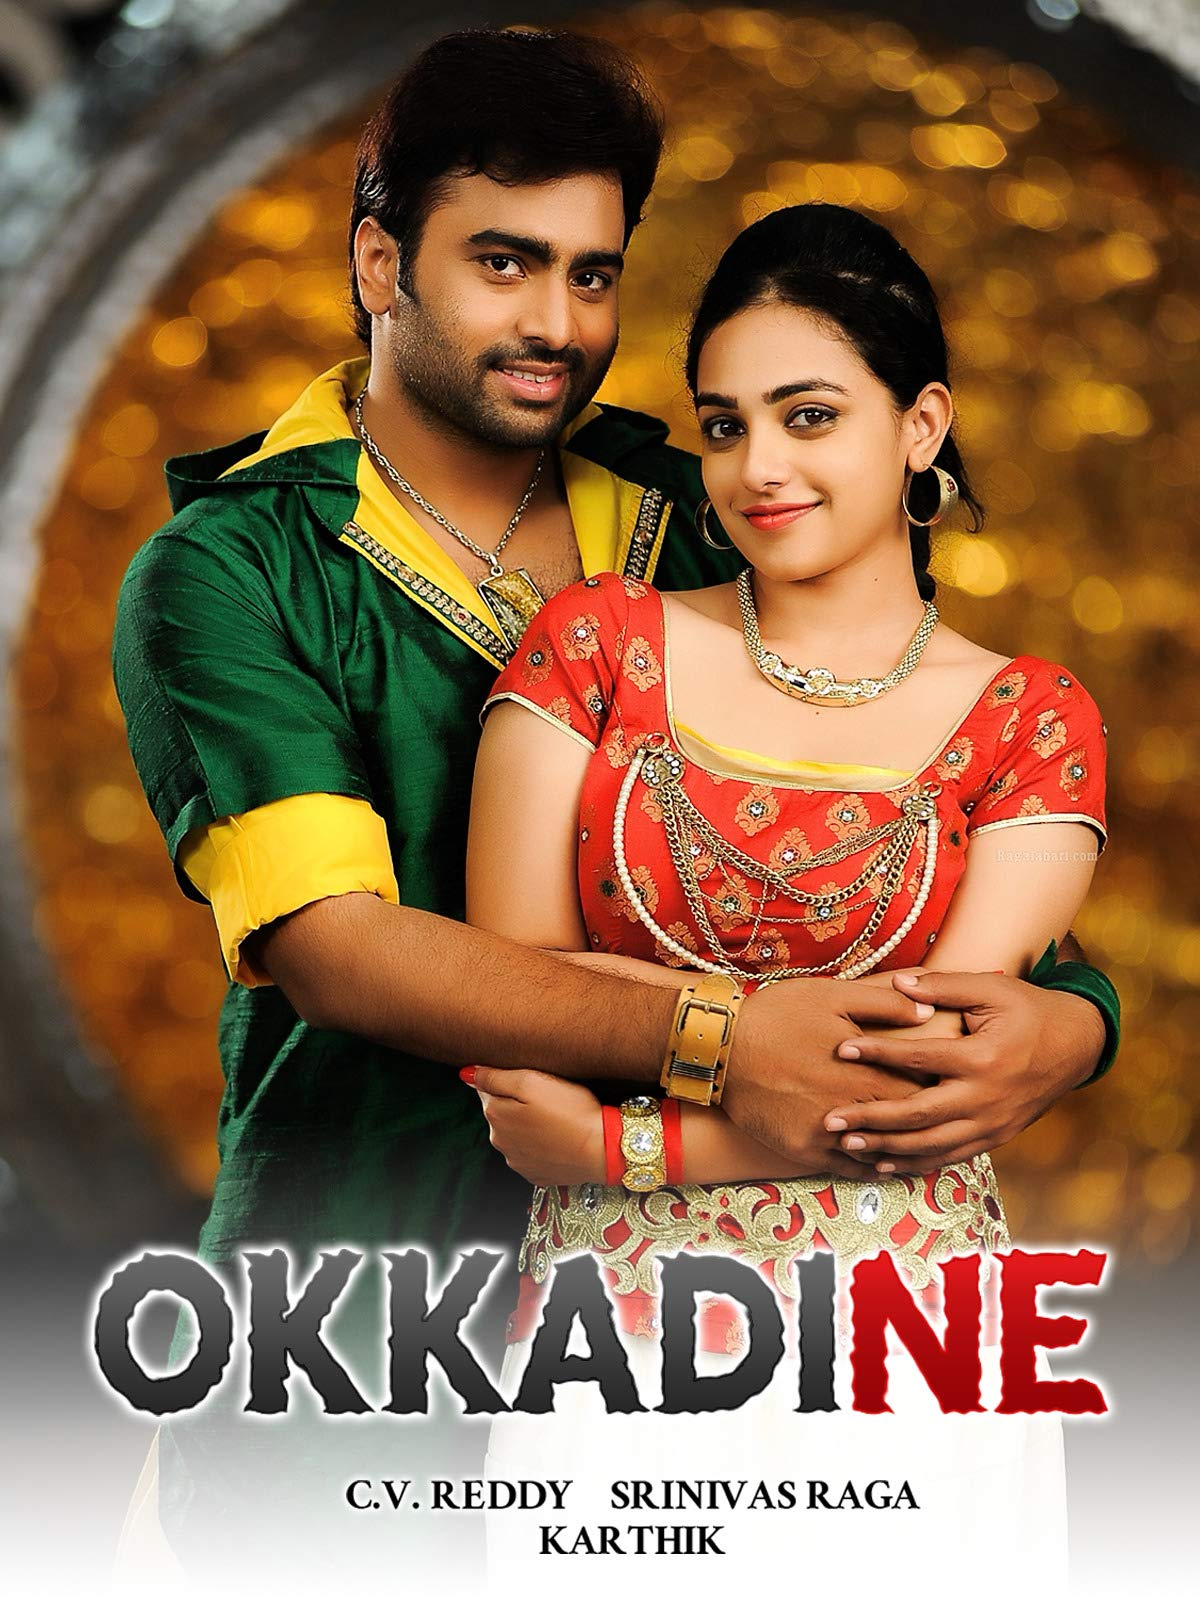 Aur Ek Dushman (Okkadine) 2020 Hindi Dubbed 300MB HDRip Download